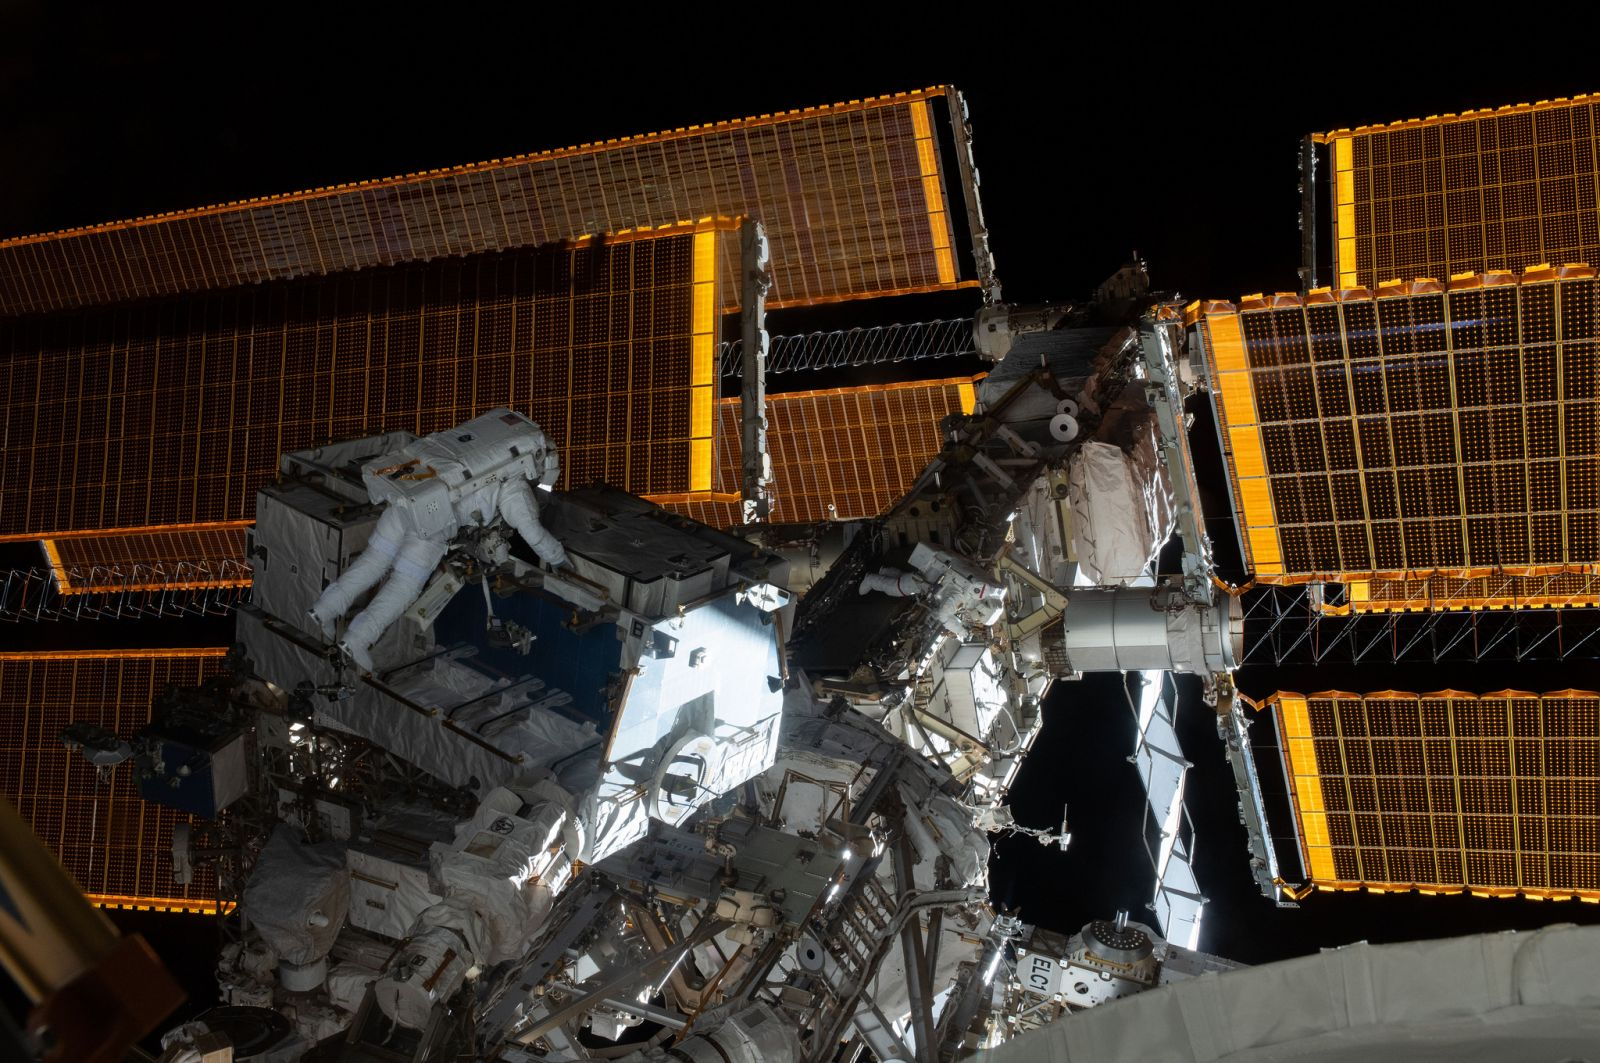 NASA astronauts Nick Hague, left, and Anne McClain work to replace batteries on the P4 truss. Photo Credit: NASA